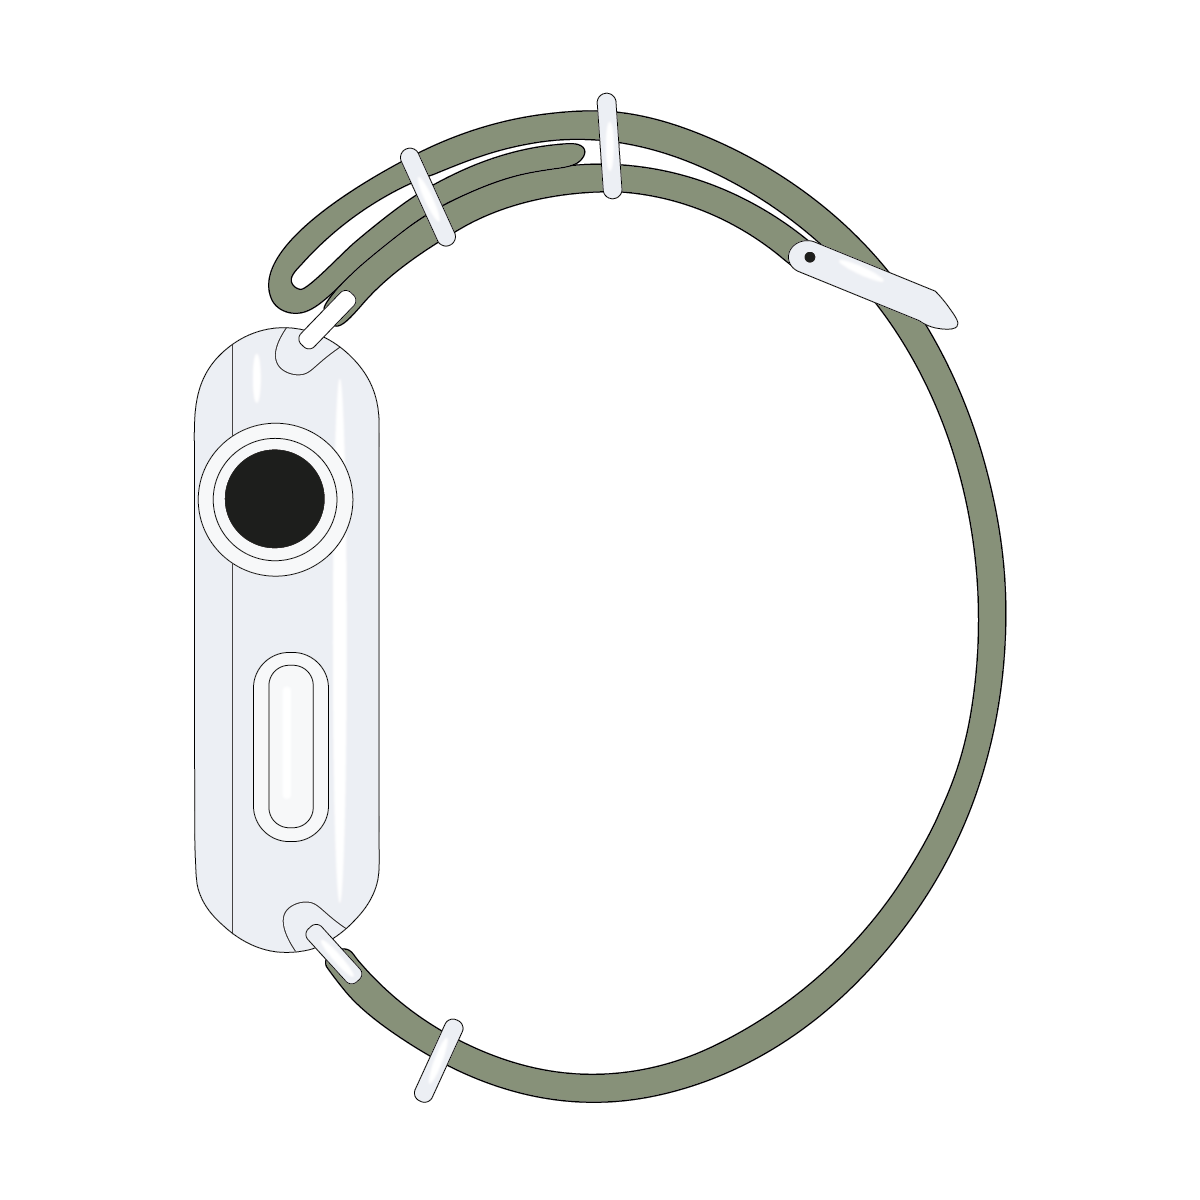 Cinturino Nato Apple Watch in nylon color grigio muschio | Roobaya – Bild 4